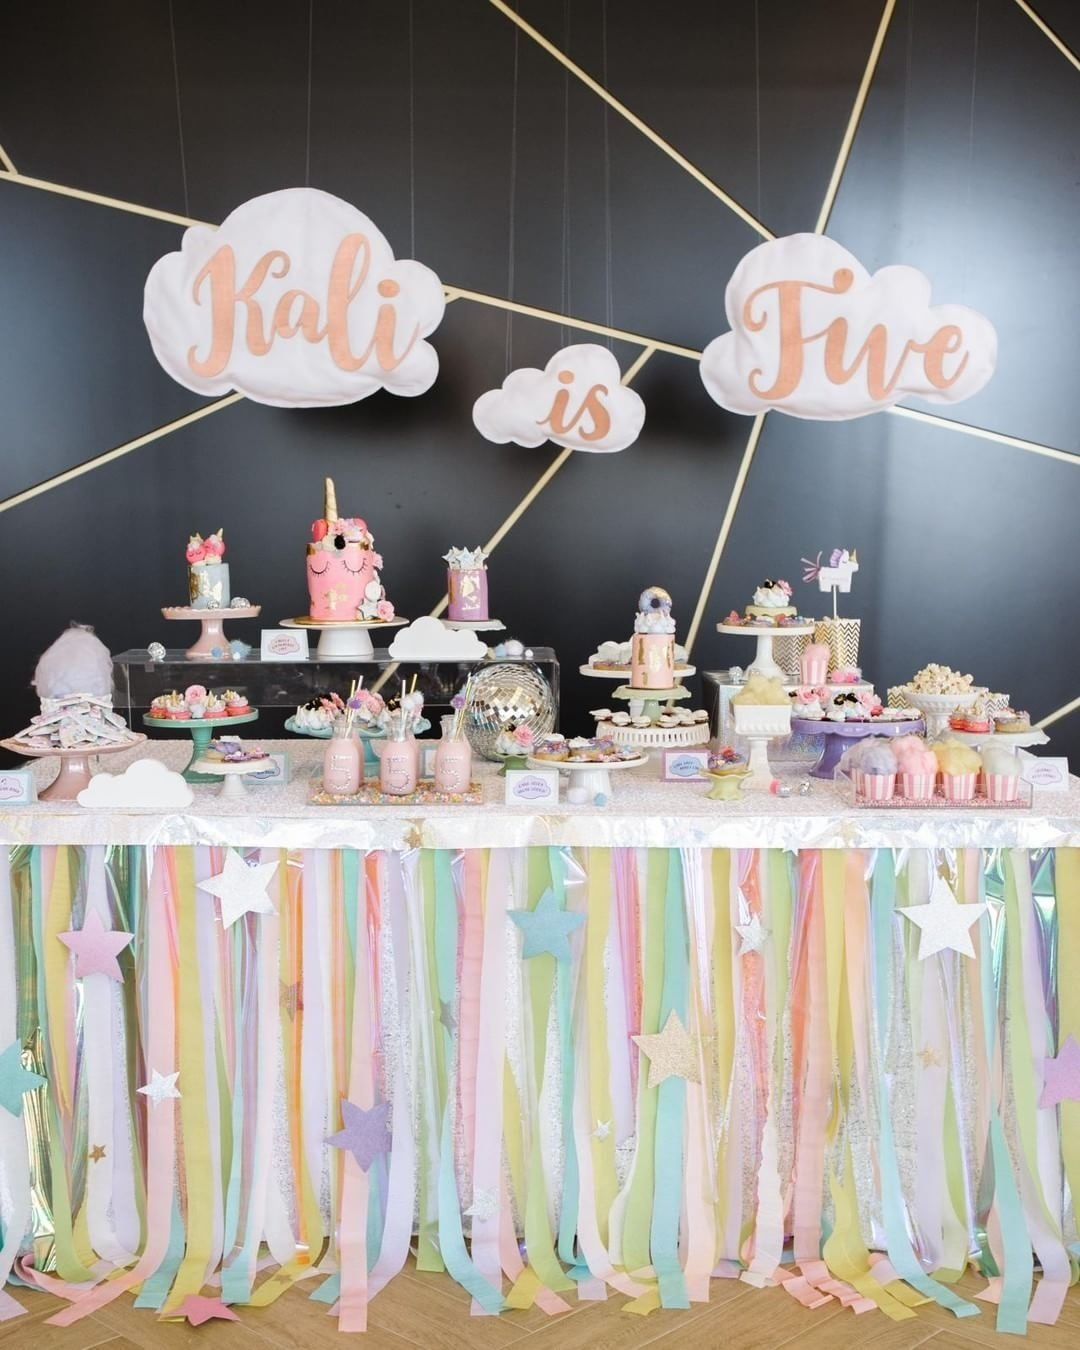 10 Gorgeous 5 Year Old Girl Birthday Party Ideas unicorn birthday party ideas girl birthday party pinterest 2020